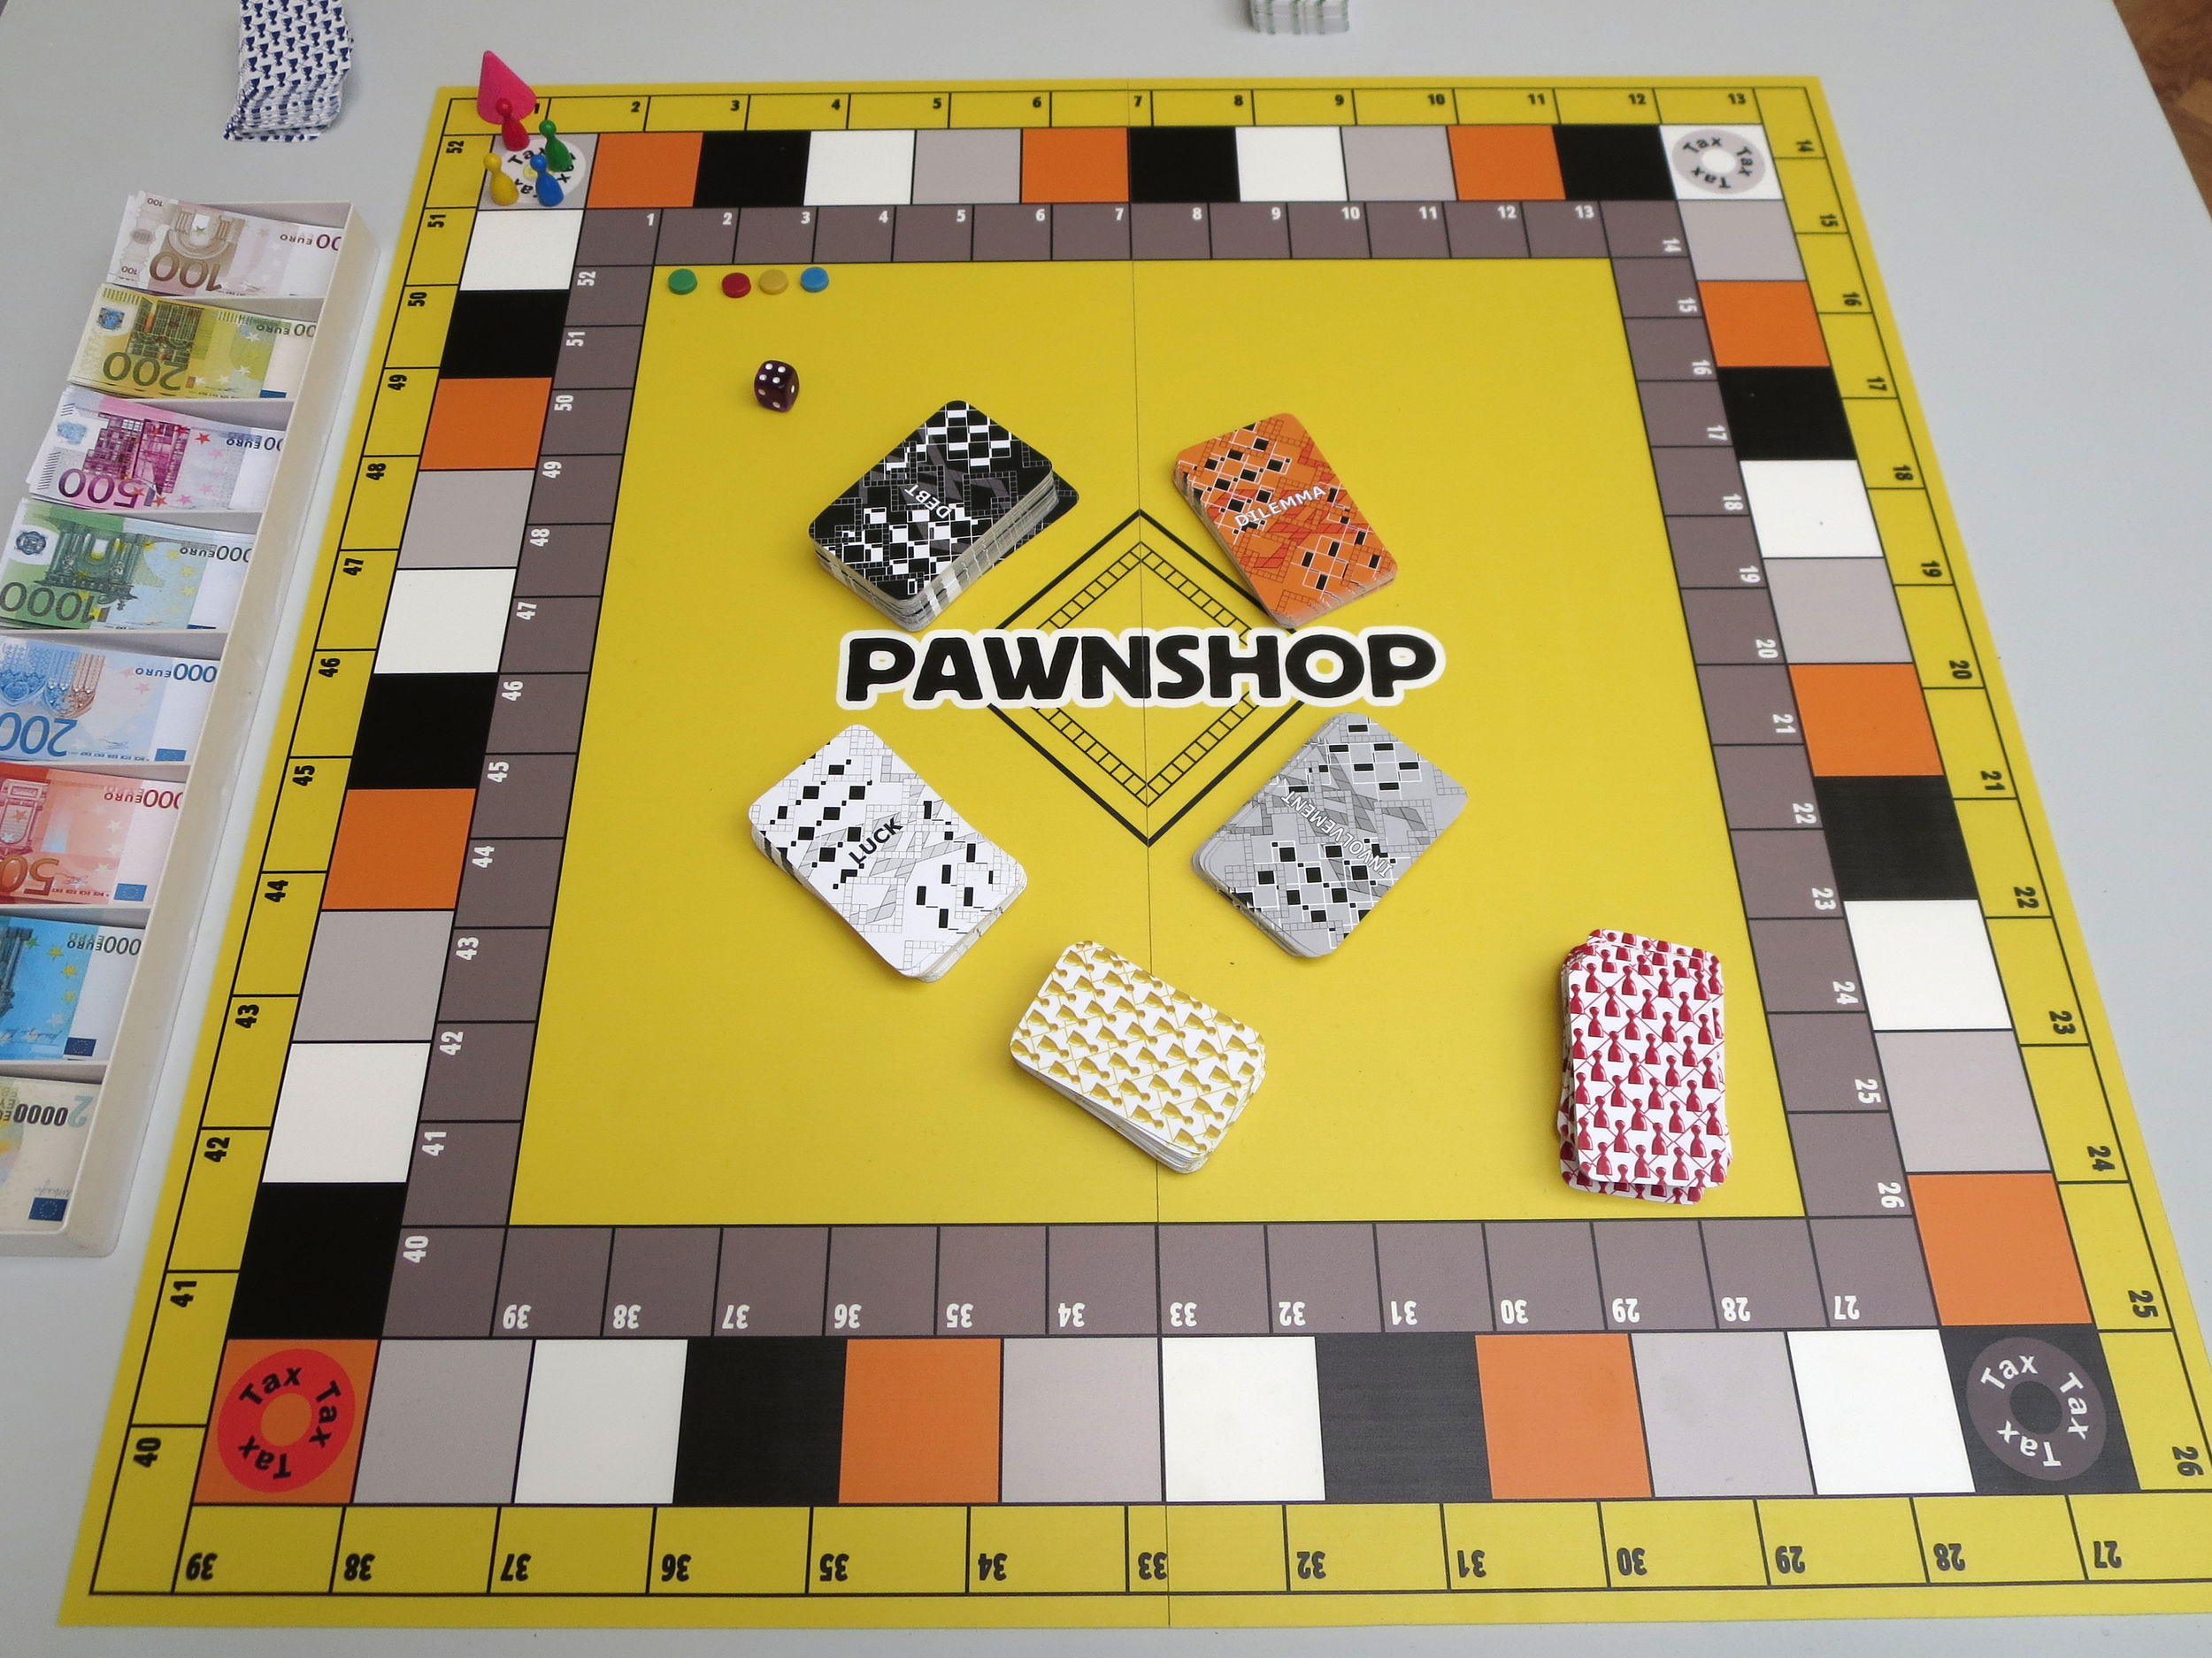 Lina Theodoru,  The Pawnshop,  2014. Forex 69 x 69 cm, 4 game pieces, 4 plastic chips, dice, 378 paper cards, plastic case with fake paper money. Courtesy: Lina Theodorou, Zina Athanassiadou Gallery.